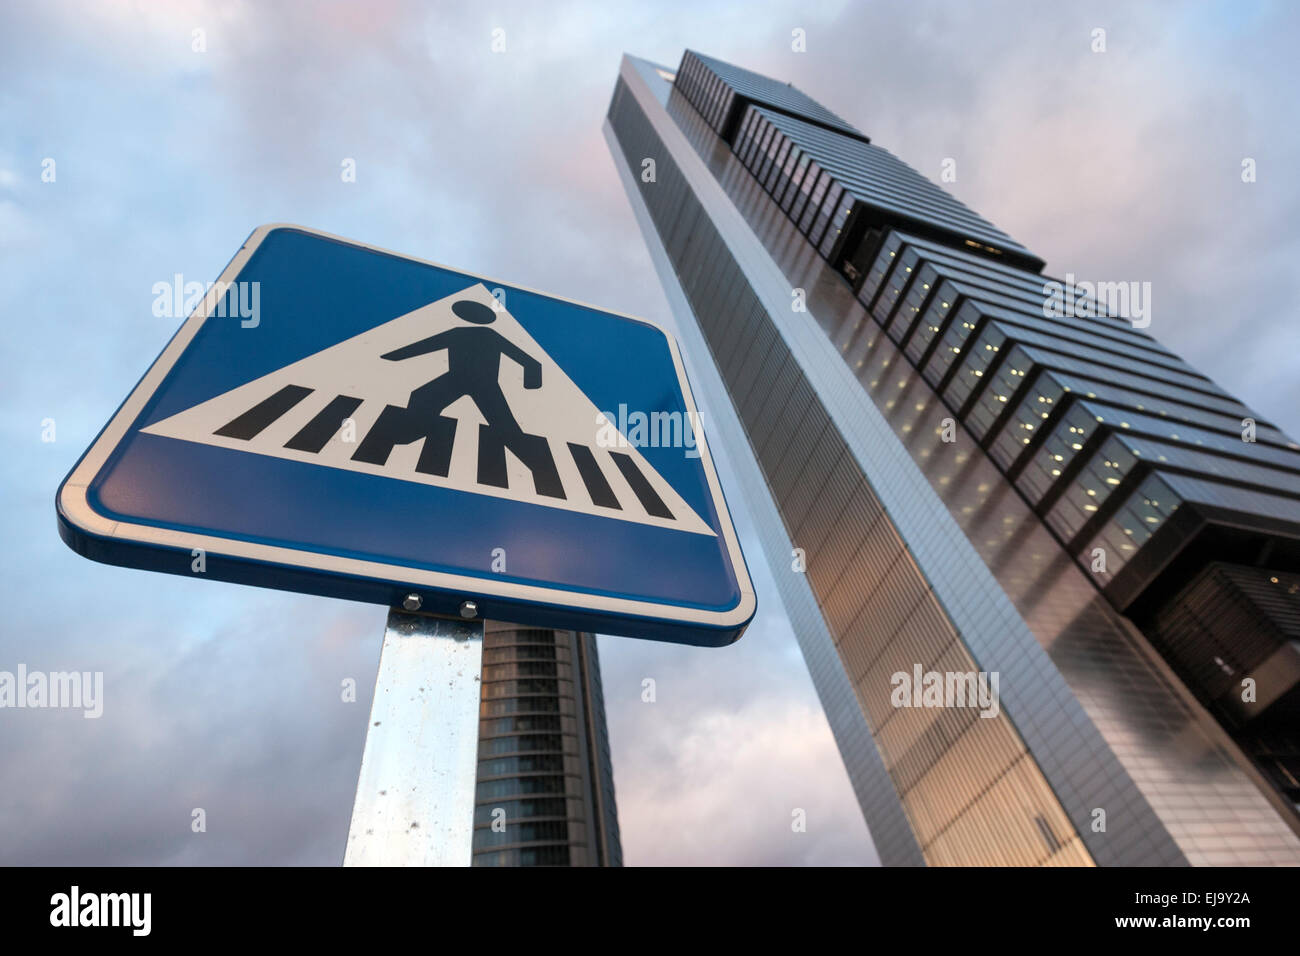 zebra-crossing-sign-and-torre-bankia-by-fosterin-cuatro-torres-business-EJ9Y2A.jpg